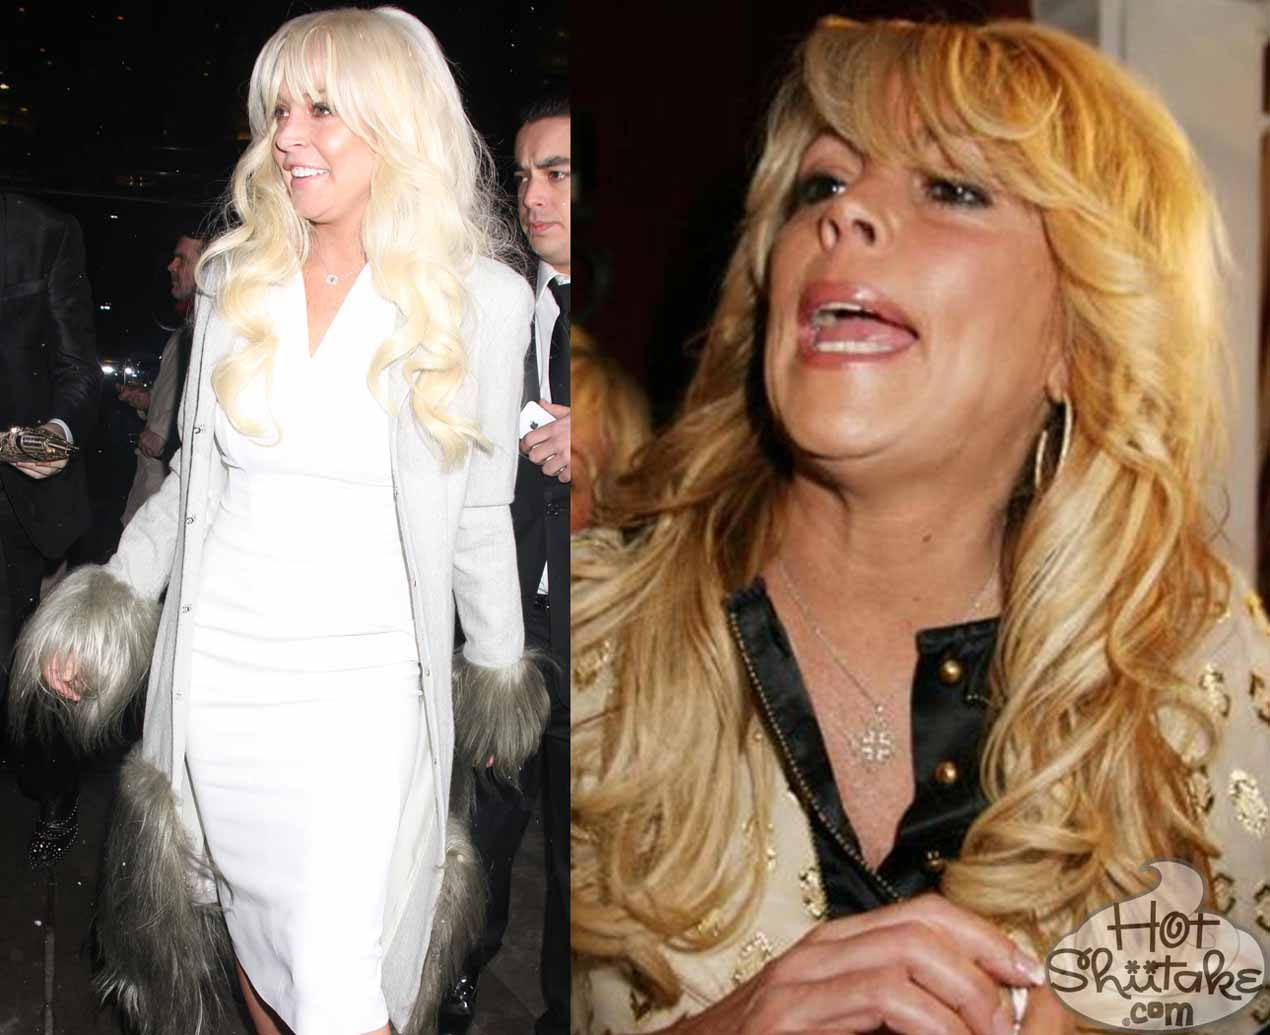 Lindsay Lohan and Dina Lohan Look Alike